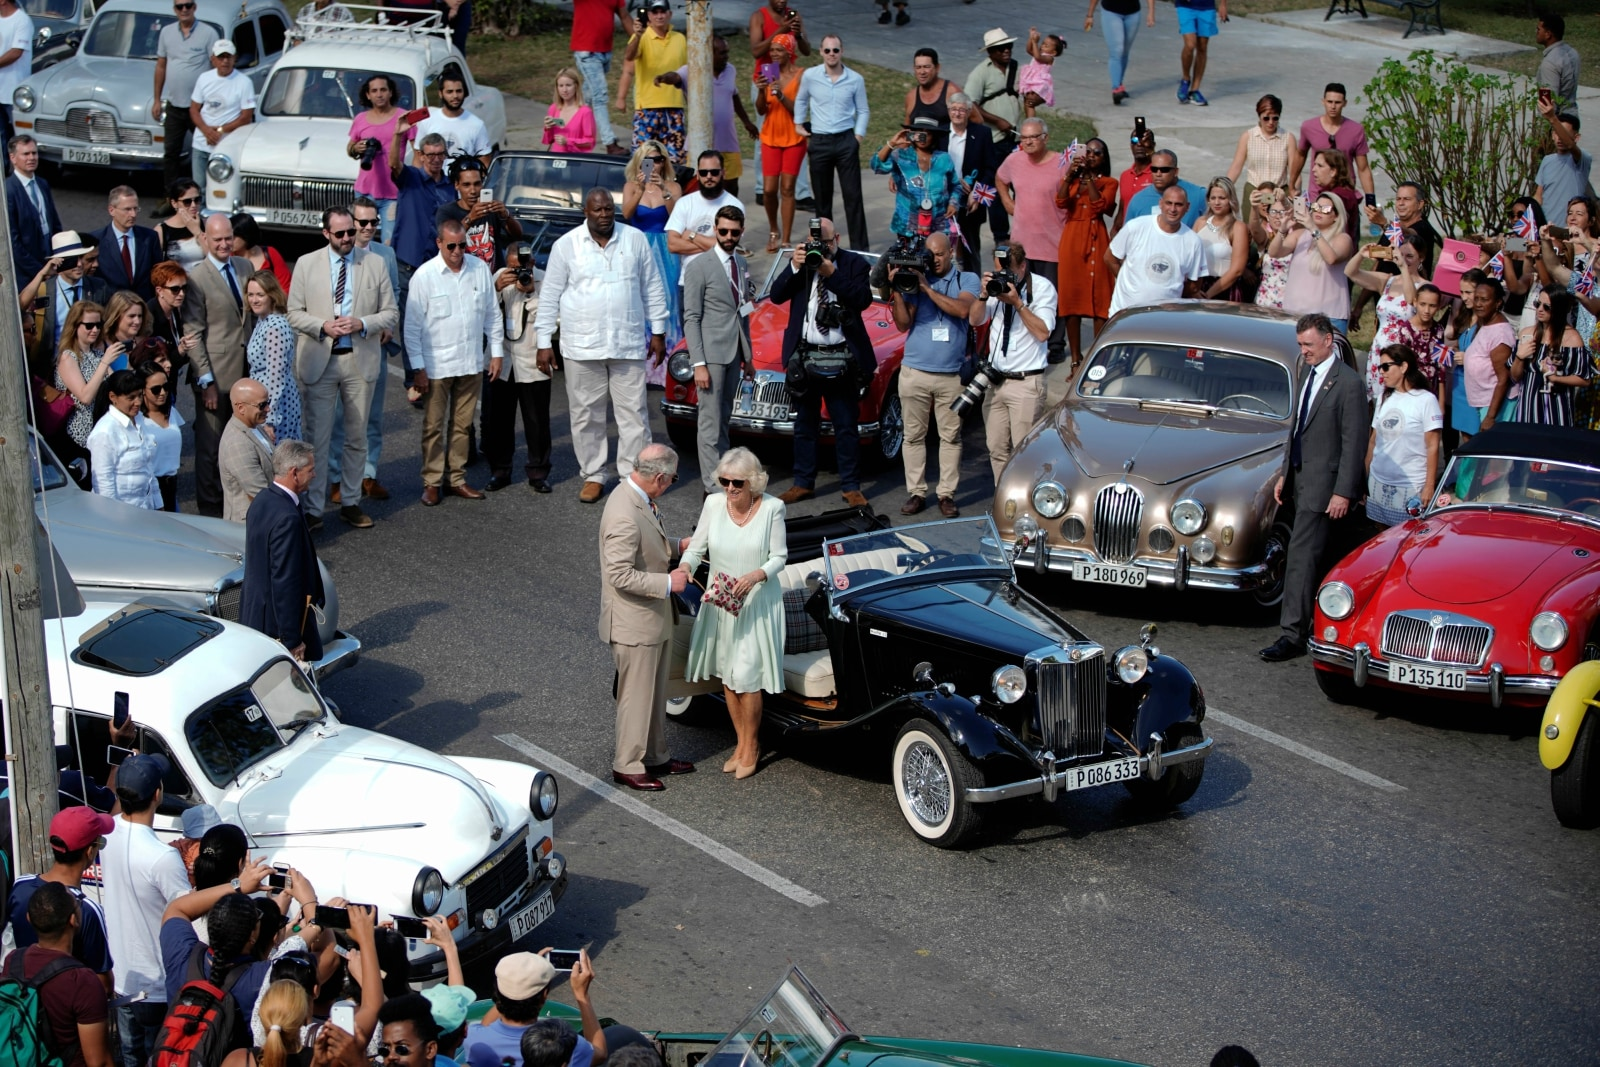 Britain's Prince Charles and Camilla, Duchess of Cornwall arrive at a British Classic Car event in Havana, Cuba, March 26, 2019. REUTERS/Alexandre Meneghini